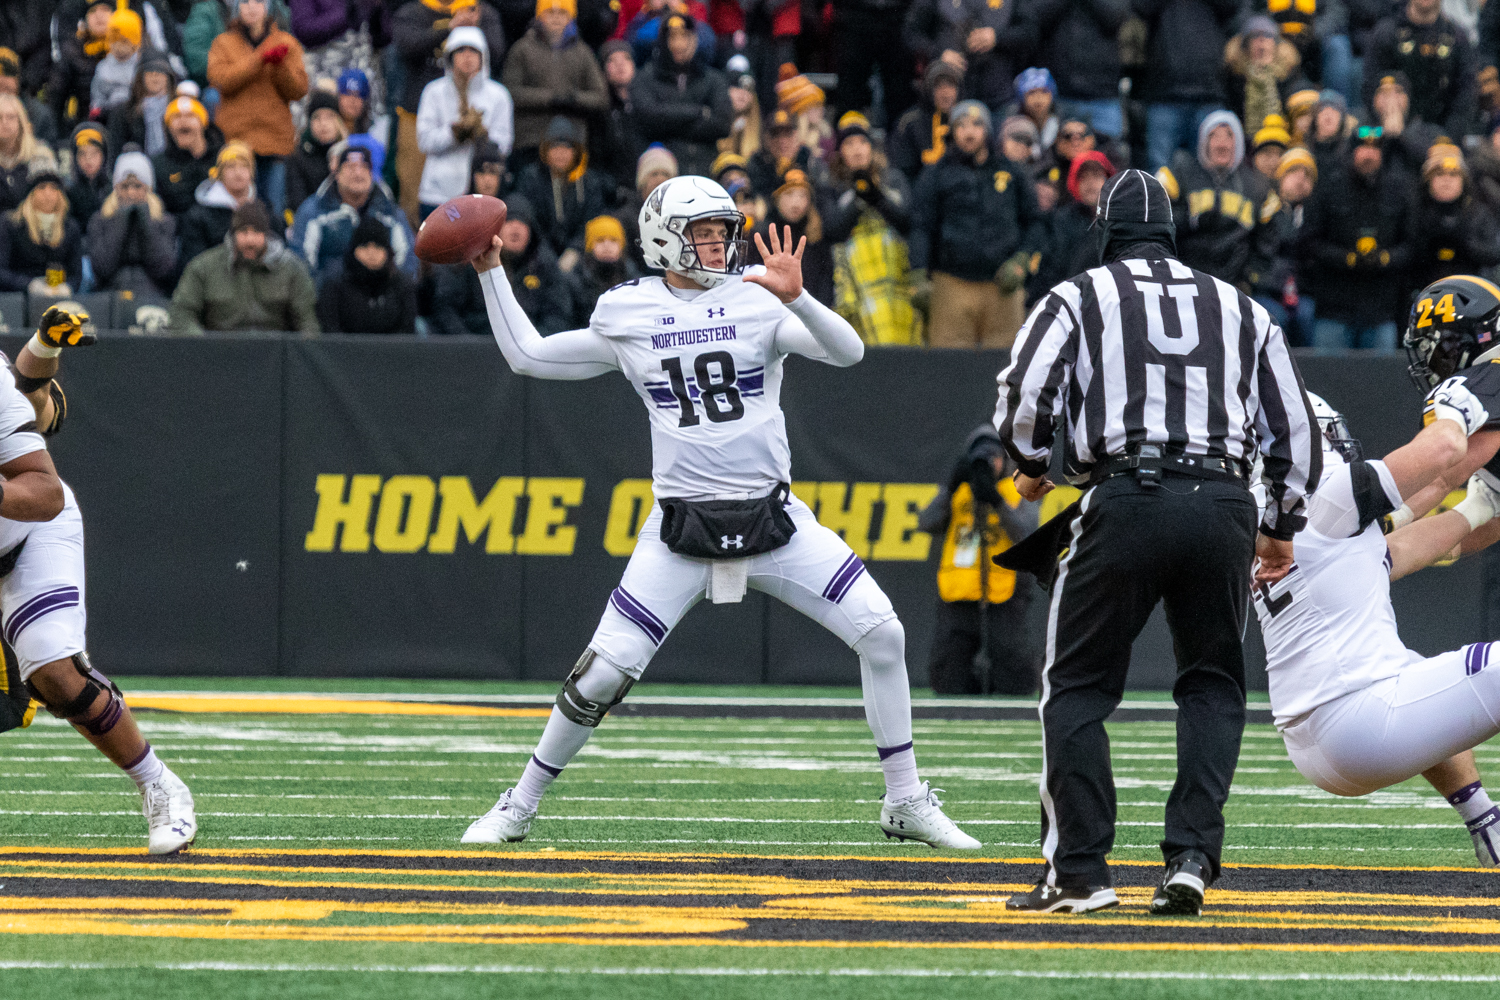 Northwestern+quarterback+Clayton+Thorson+%2318+drops+back+to+pass+during+a+game+against+Iowa+on+Saturday%2C+Nov.+10%2C+2018+at+Kinnick+Stadium+in+Iowa+City.+The+Wildcats+defeated+the+Hawkeyes+14-10.+%28David+Harmantas%2FThe+Daily+Iowan%29